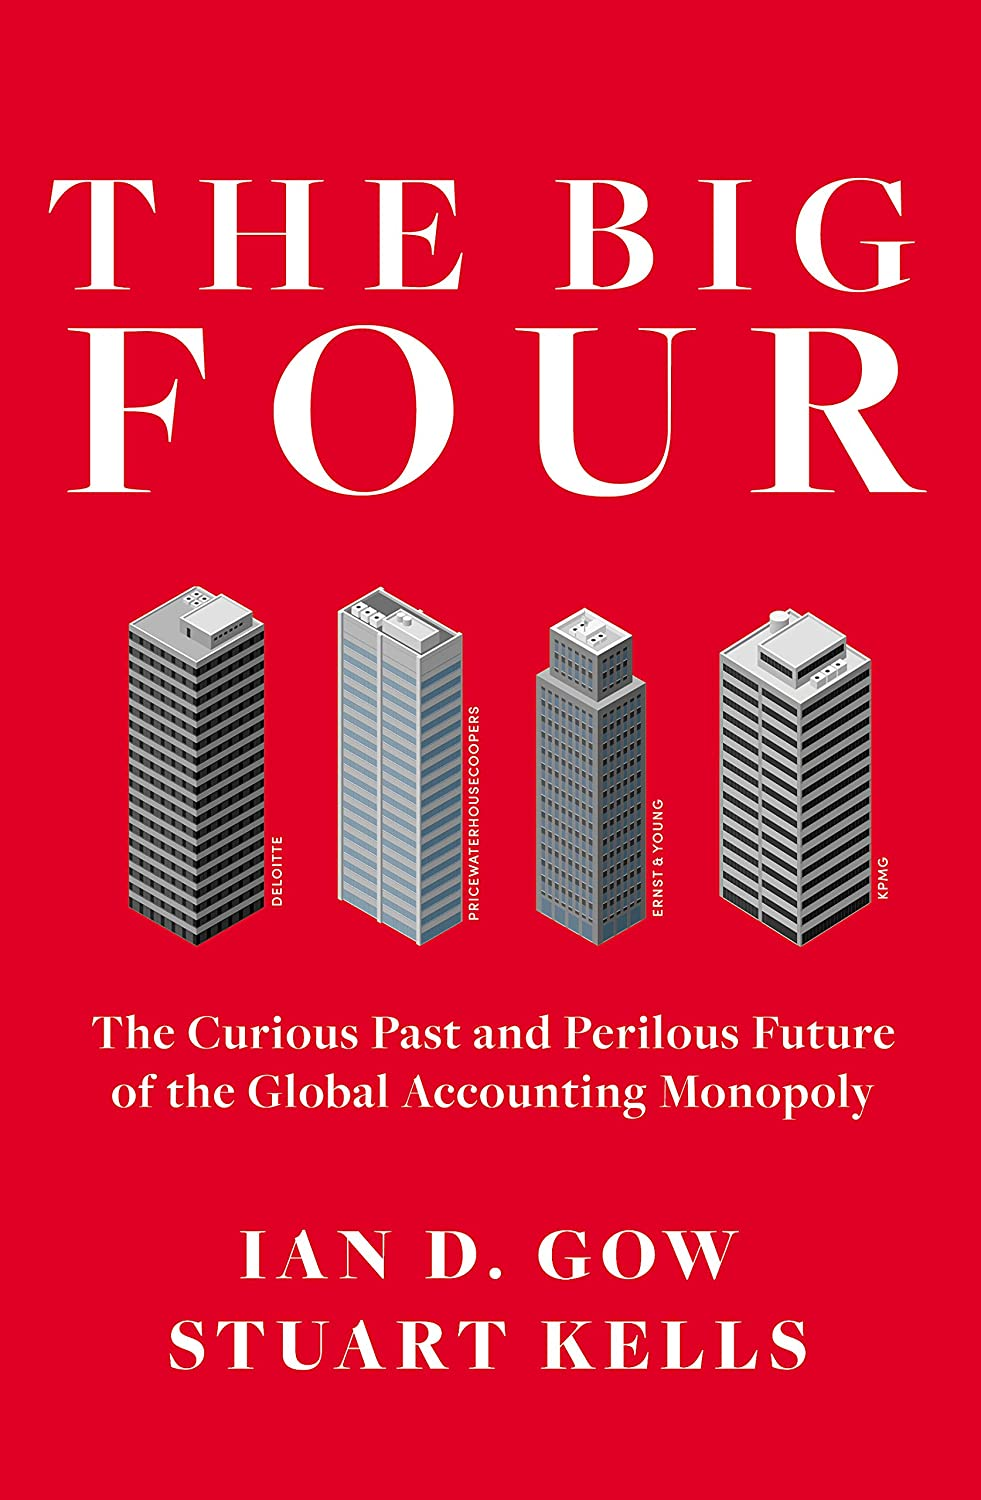 The Big Four: The Curious Past and Perilous Future of the Global Accounting Monopoly (English Edition) eBook: Kells, Stuart, Gow, Ian D.: Amazon.es: Tienda Kindle